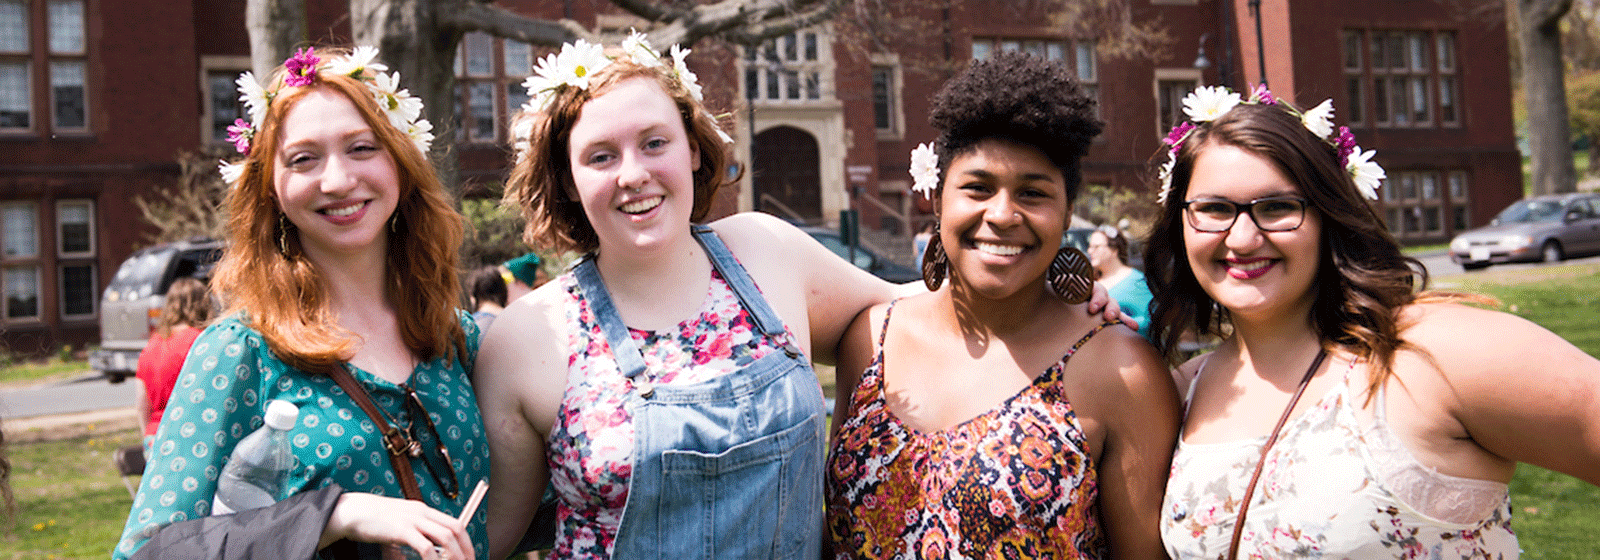 Photo of a group of students celebrating Pangy Day with flowers in their hair